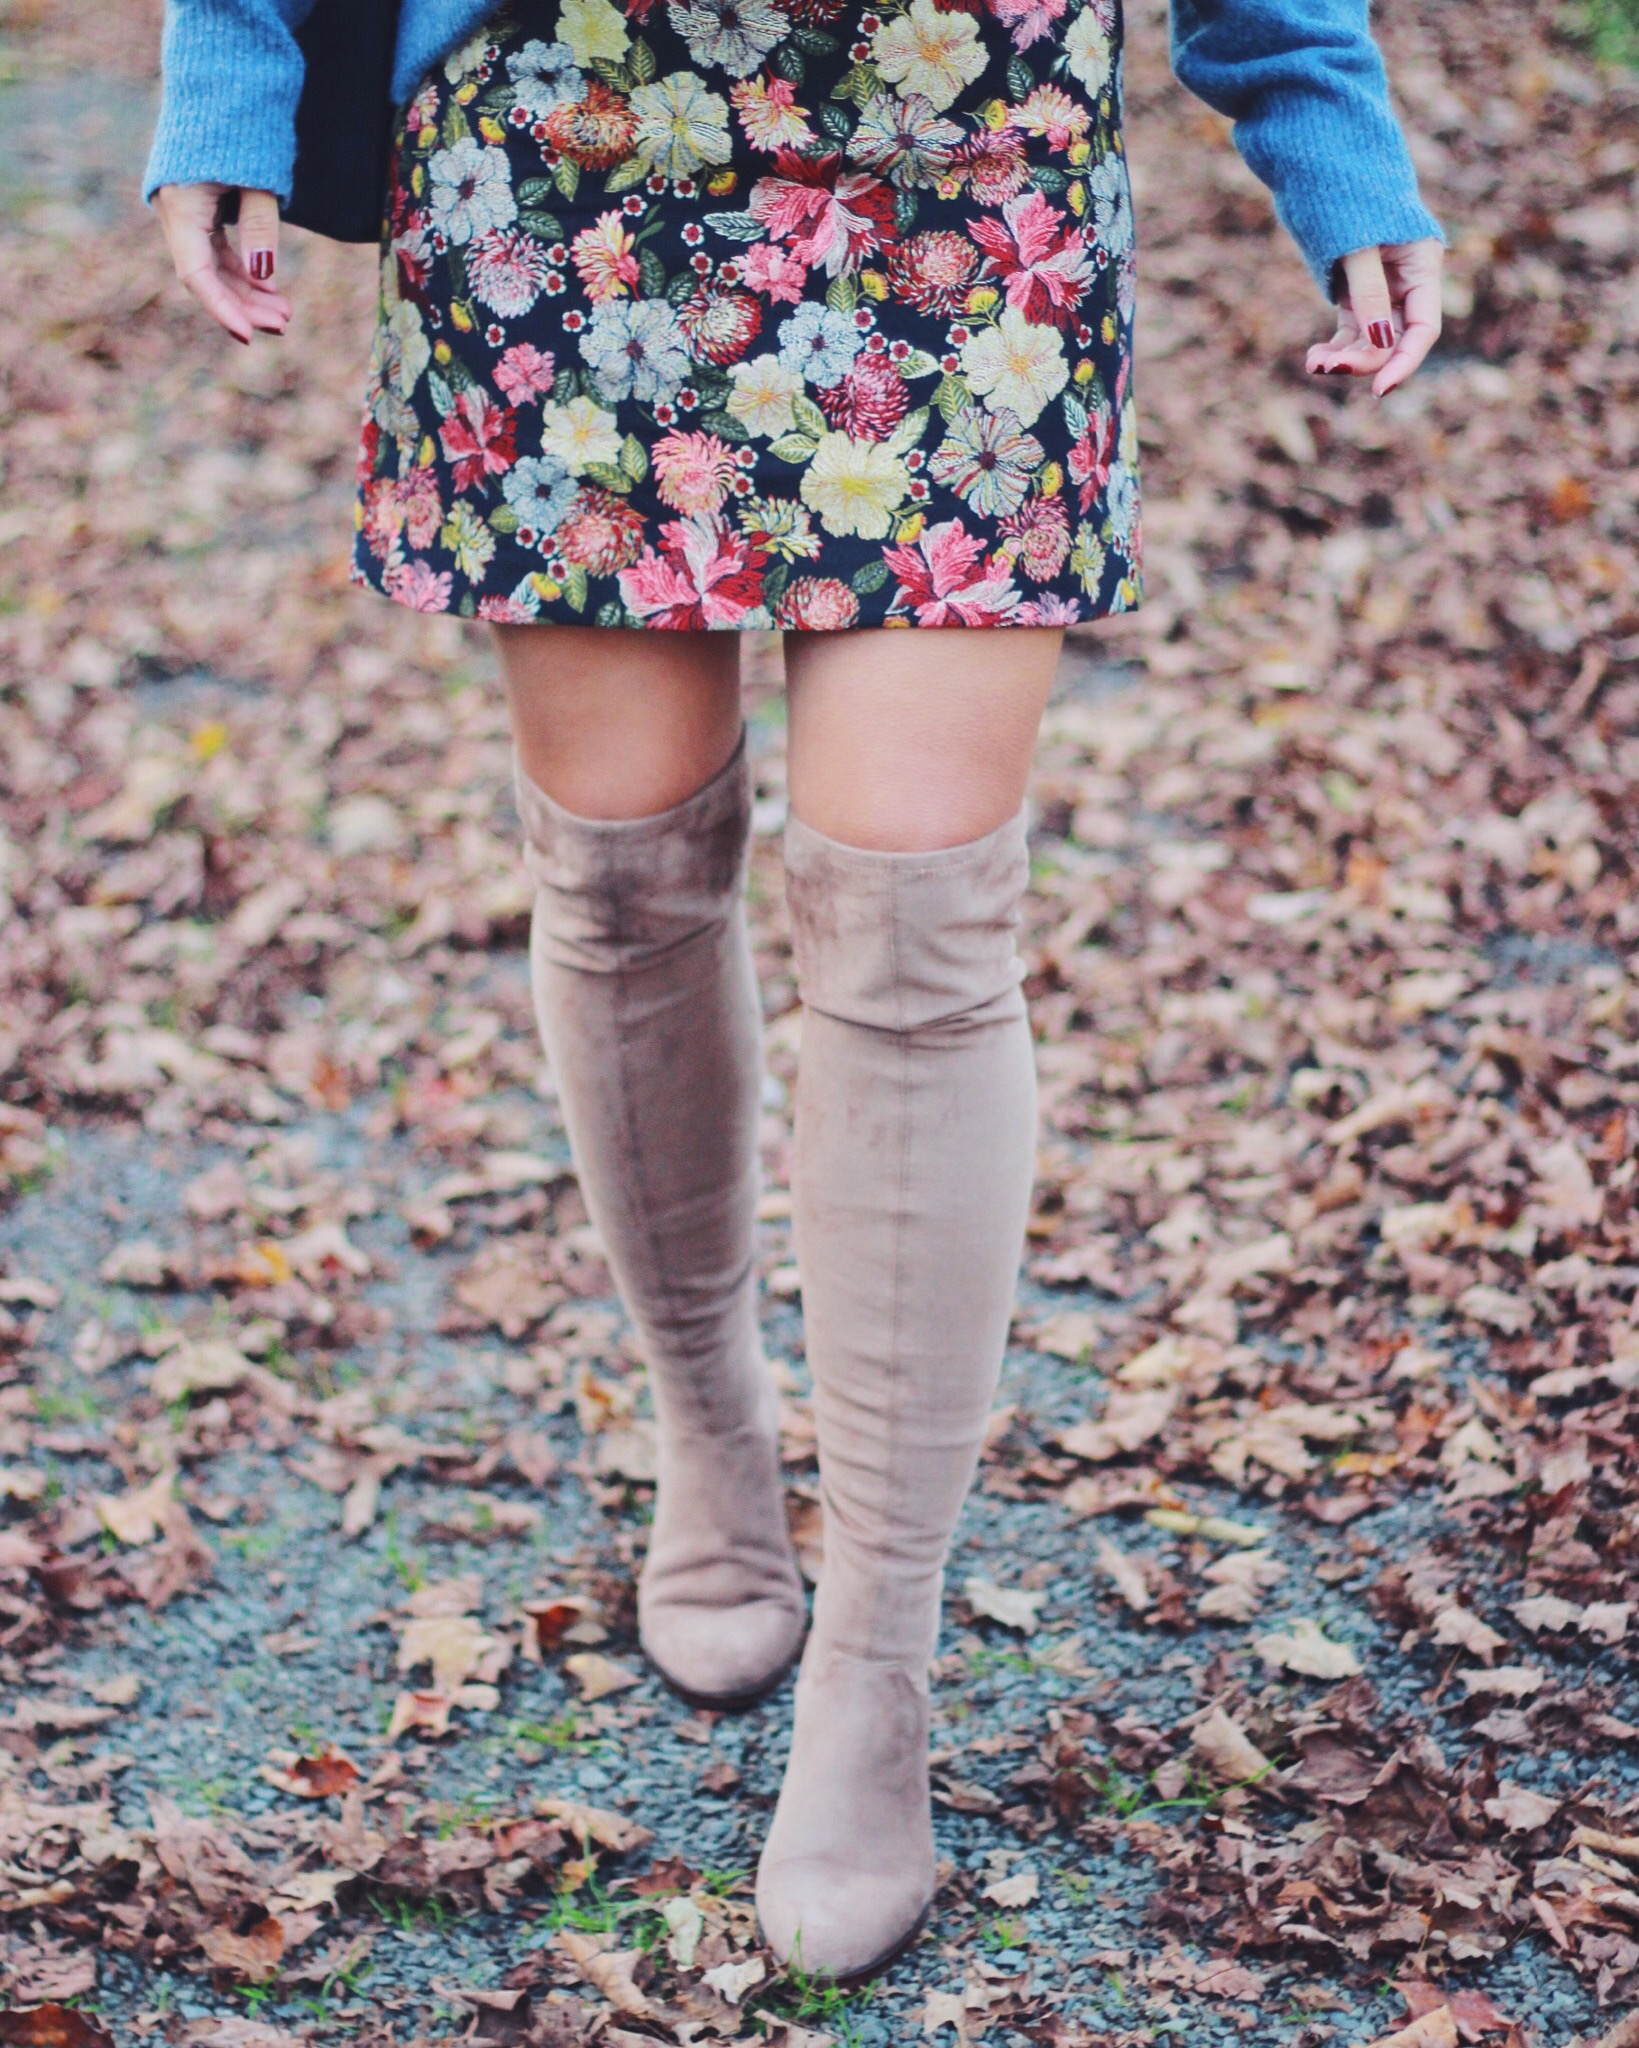 The Steele Maiden: Floral Skirt and Over the Knee Boots